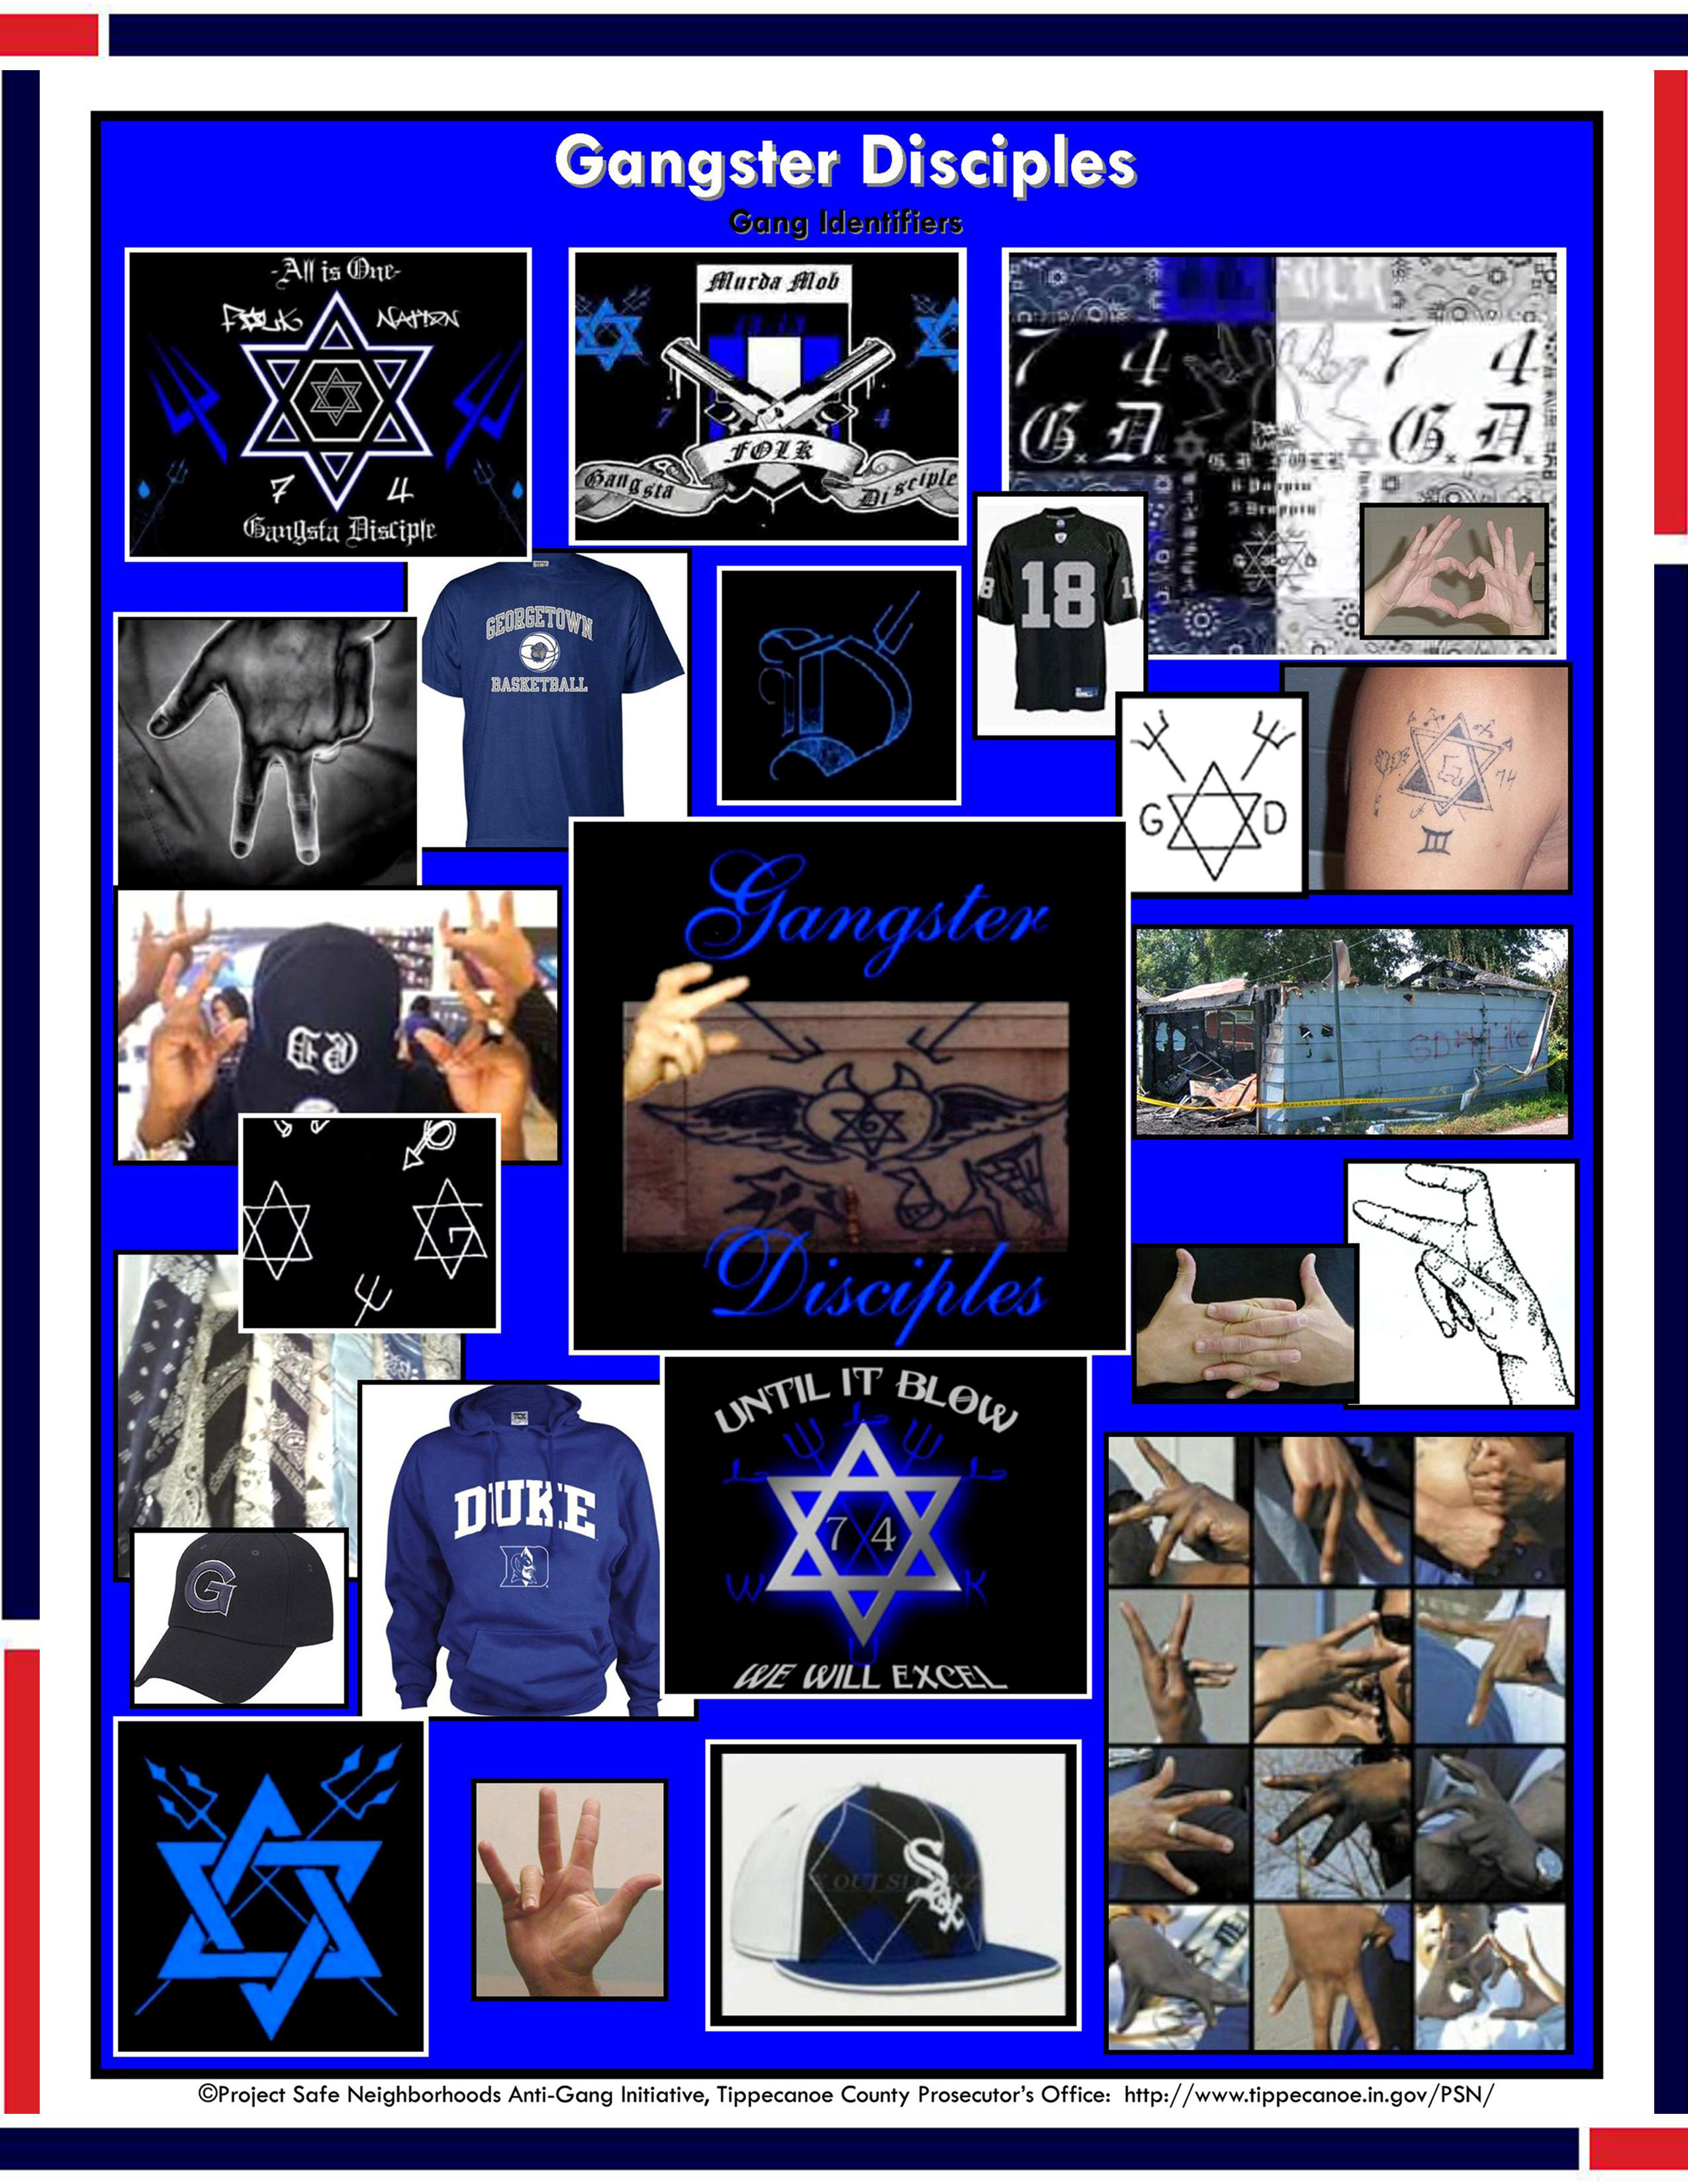 Street gang signs and symbols duck duck gray duck gangster disciples signs and symbols buycottarizona Choice Image